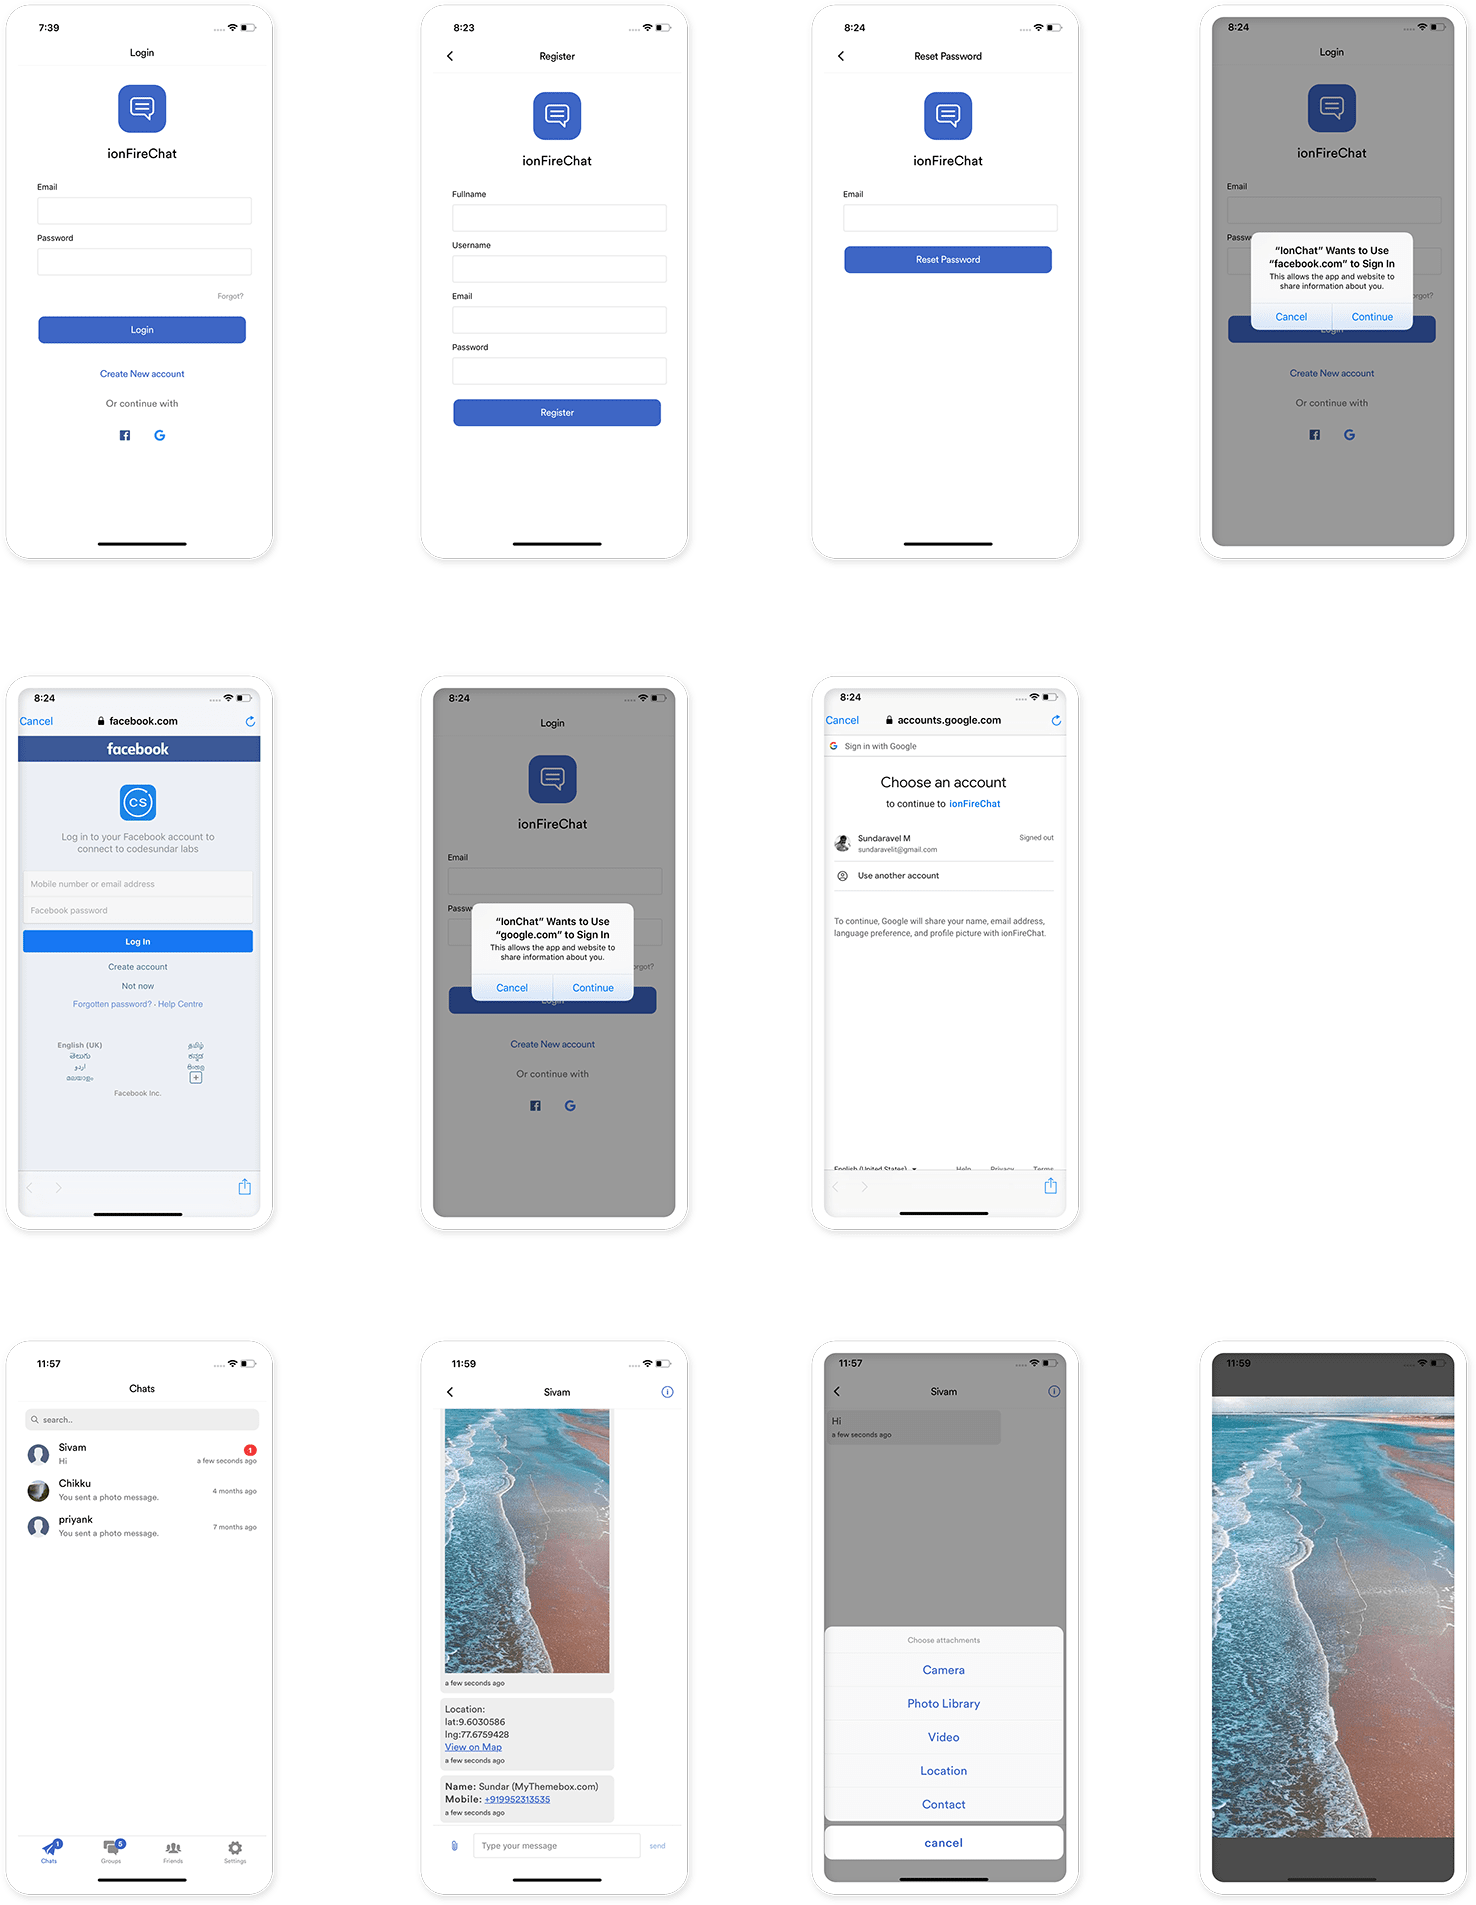 (https://mythemebox.com/template/ionic-chat-app/